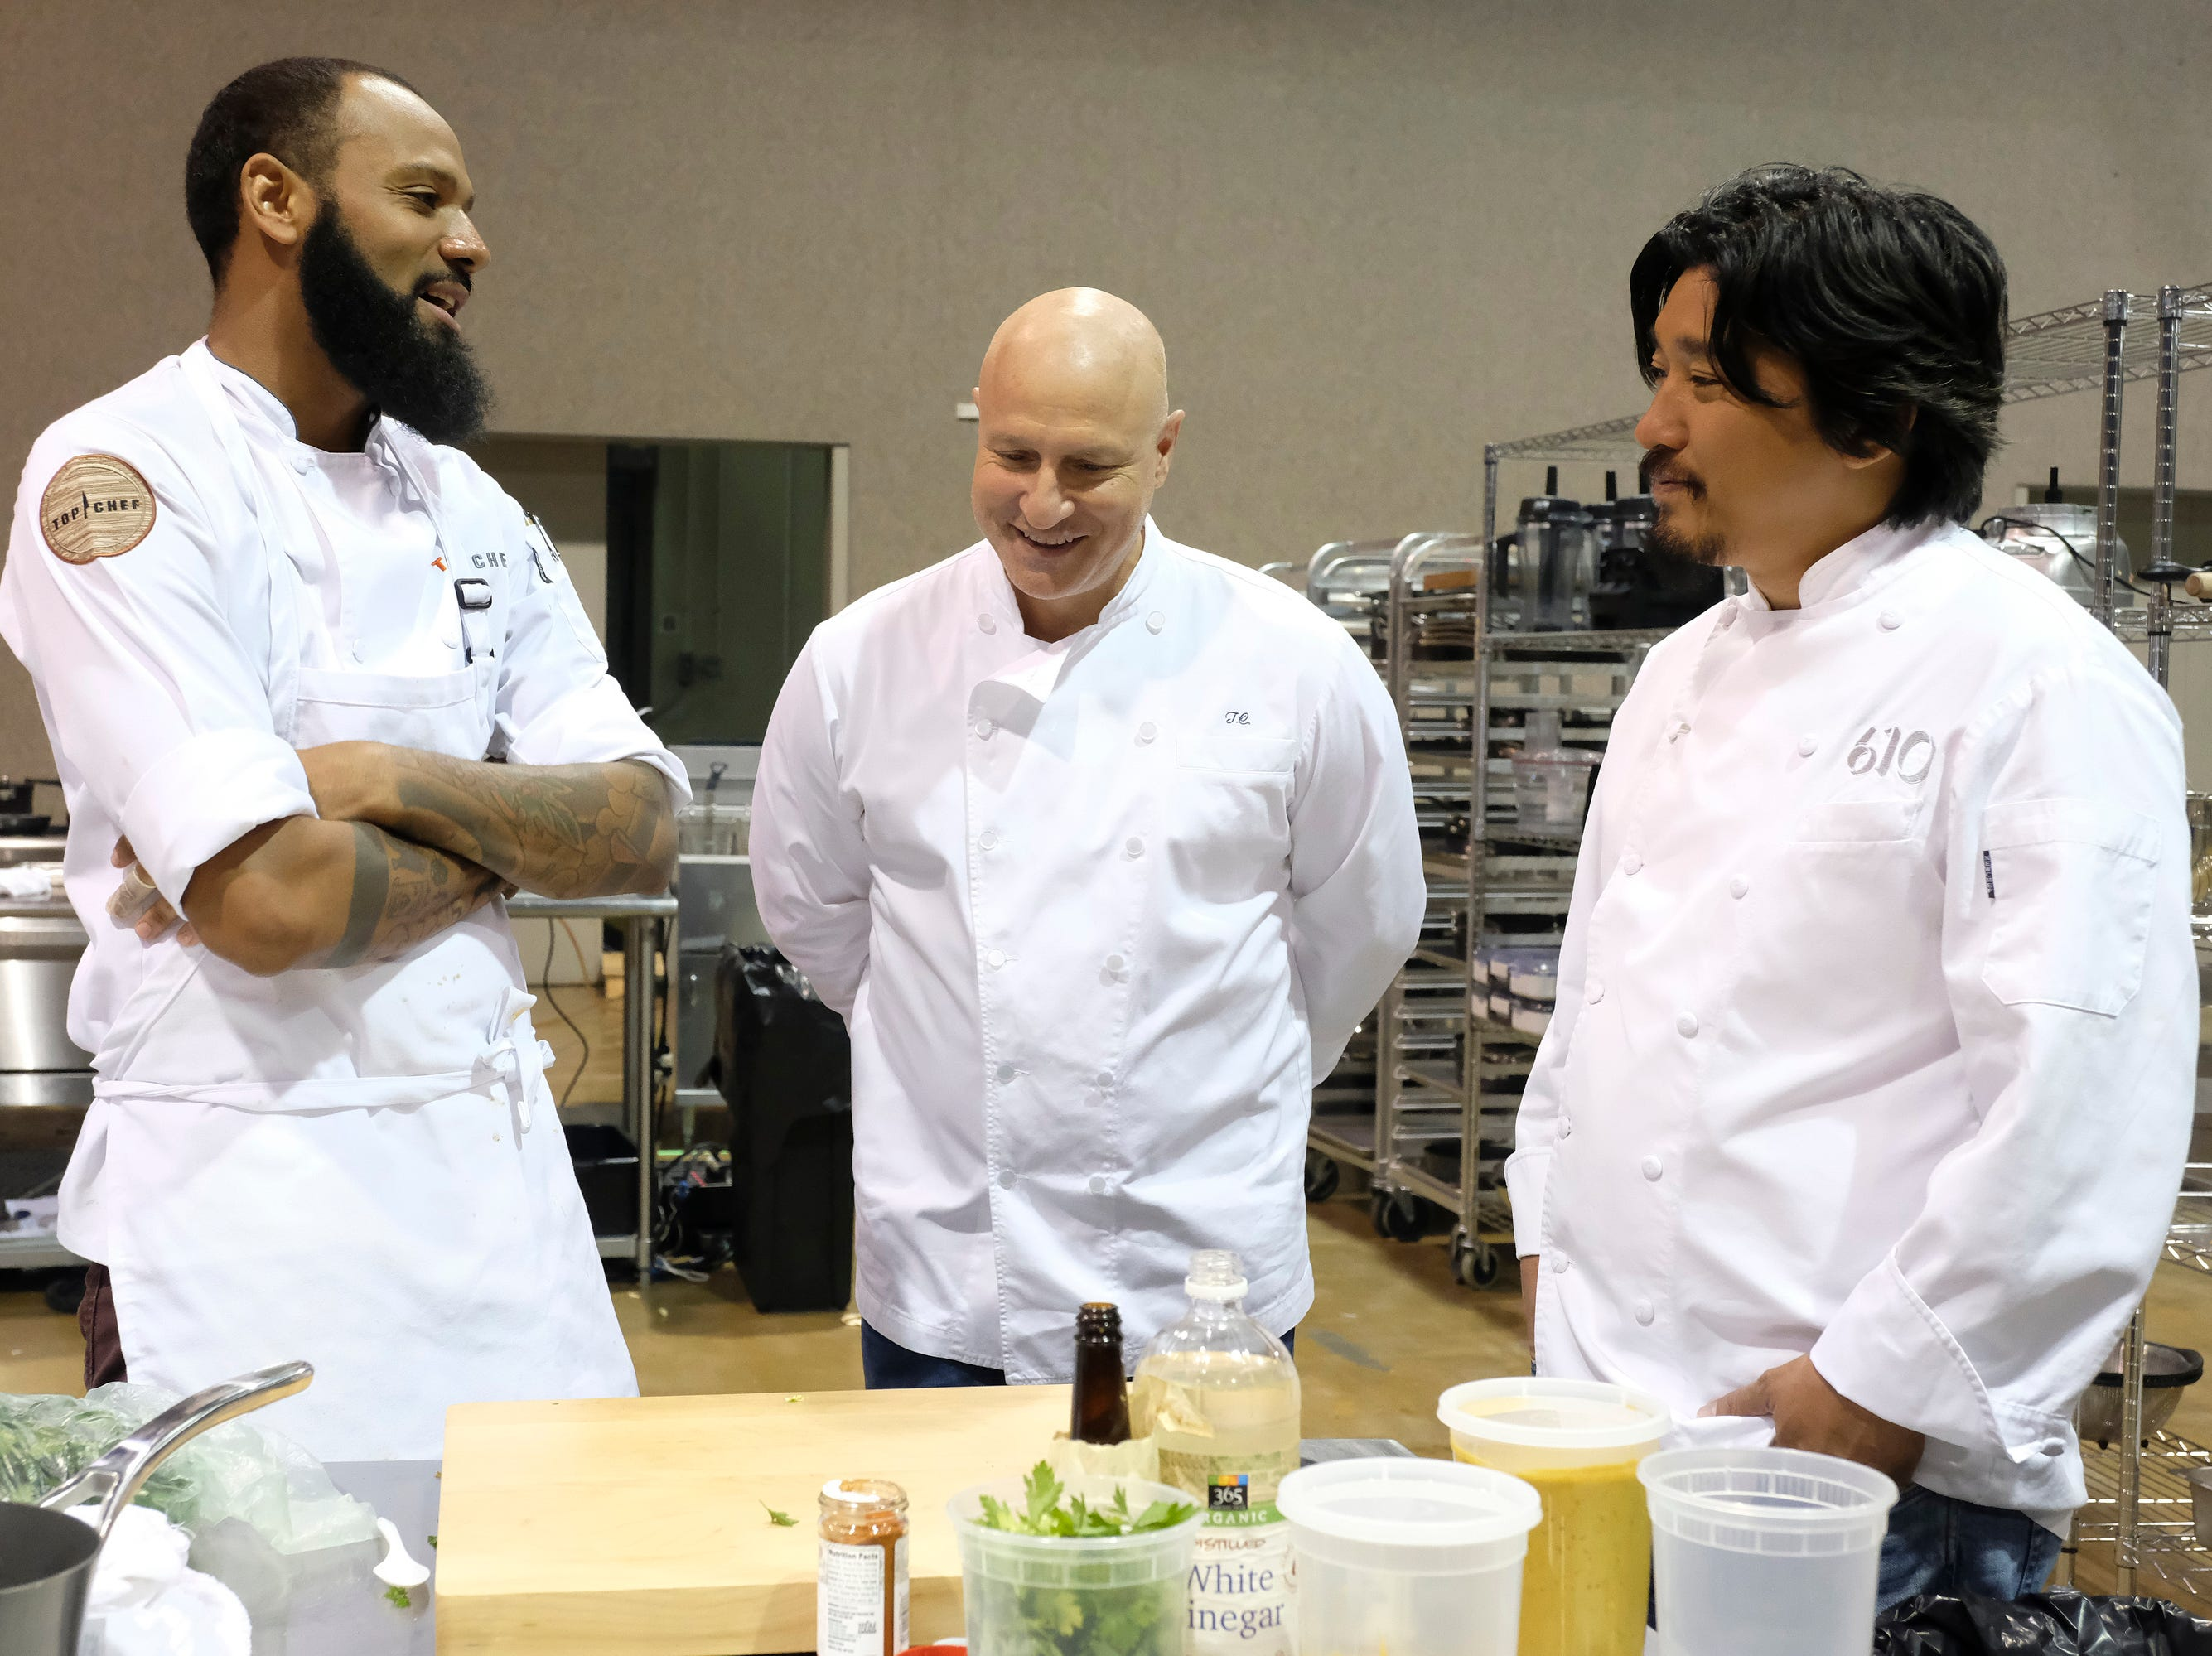 (From left to right): Contestant Justin Sutherland talks to judge Tom Colicchio and Louisville chef and 'Top Chef' alum Ed Lee on episode 10 of Bravo's 'Top Chef: Kentucky' season.